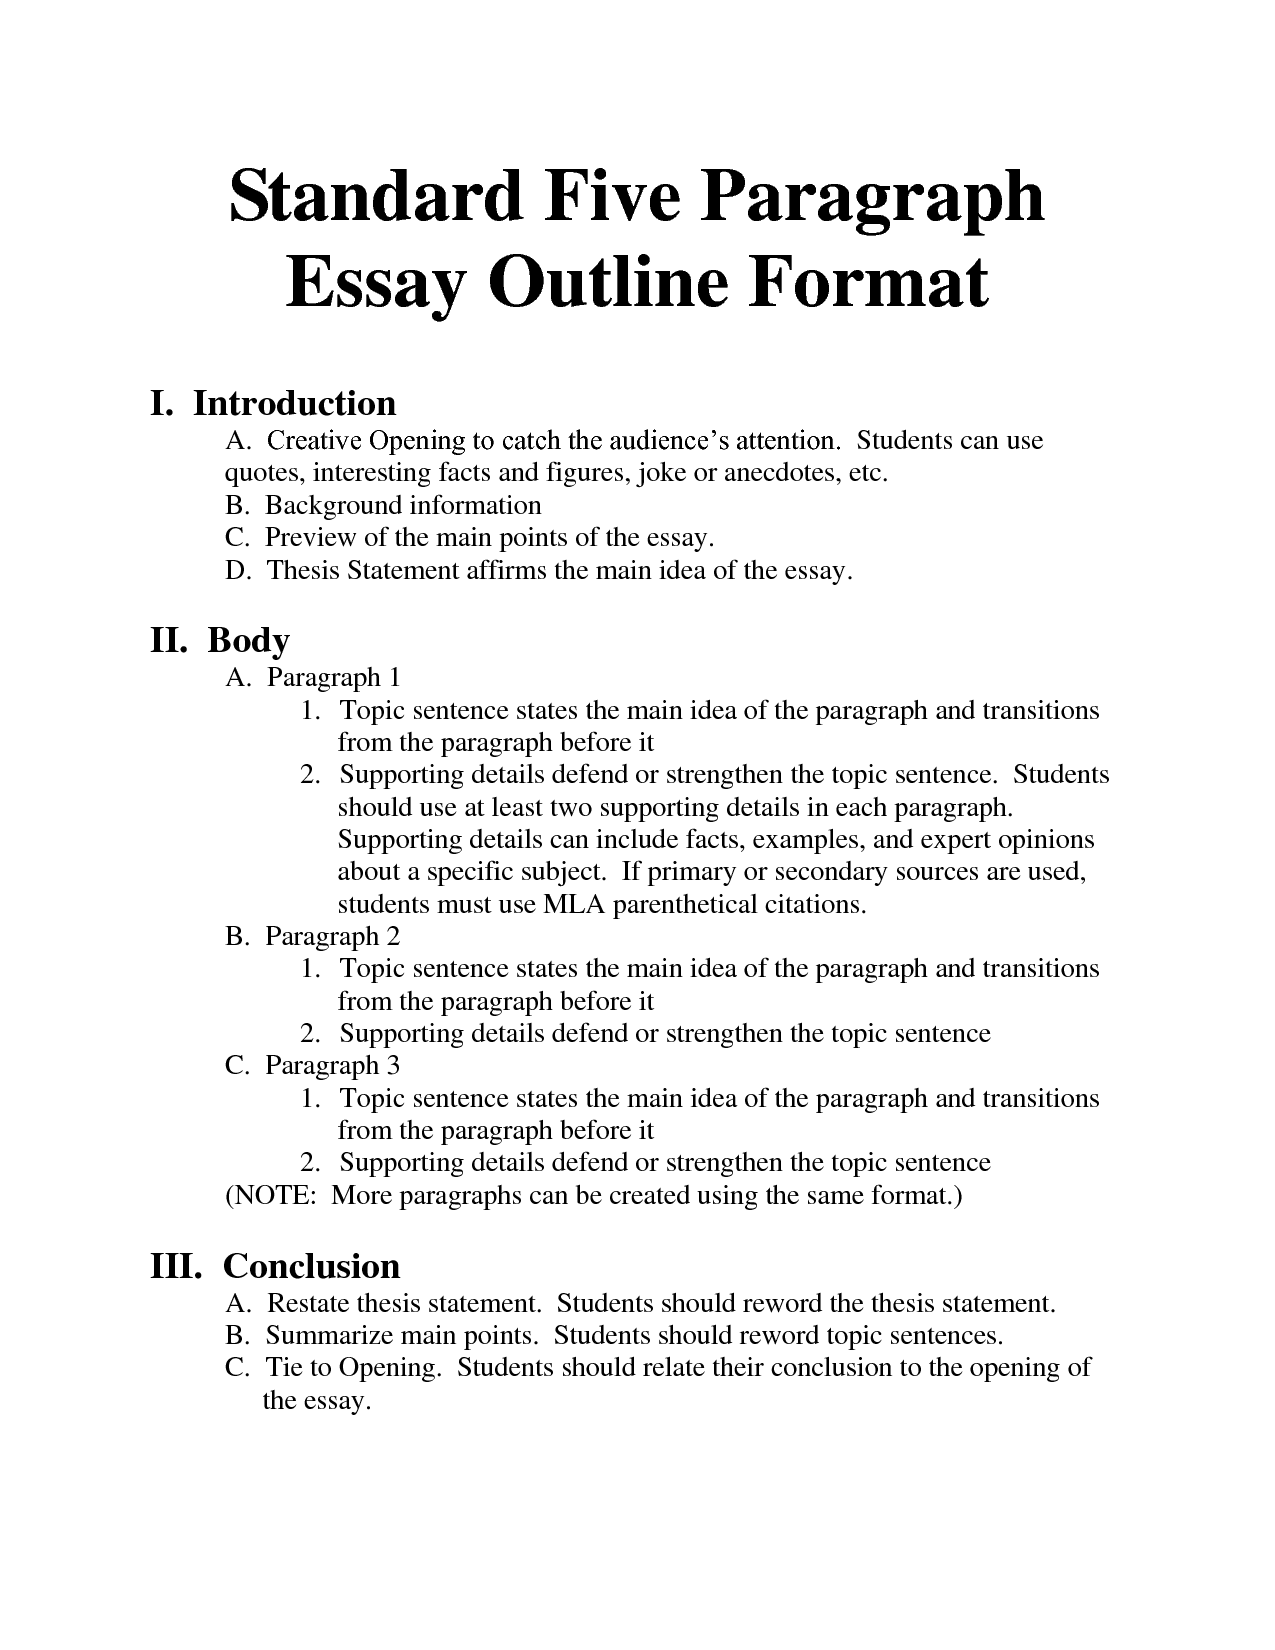 Easy Essay Topics For High School Students  Science Fiction Essays also First Day Of High School Essay How To Write An Essay Format   Prathima Institute Of Medical  Science Essays Topics